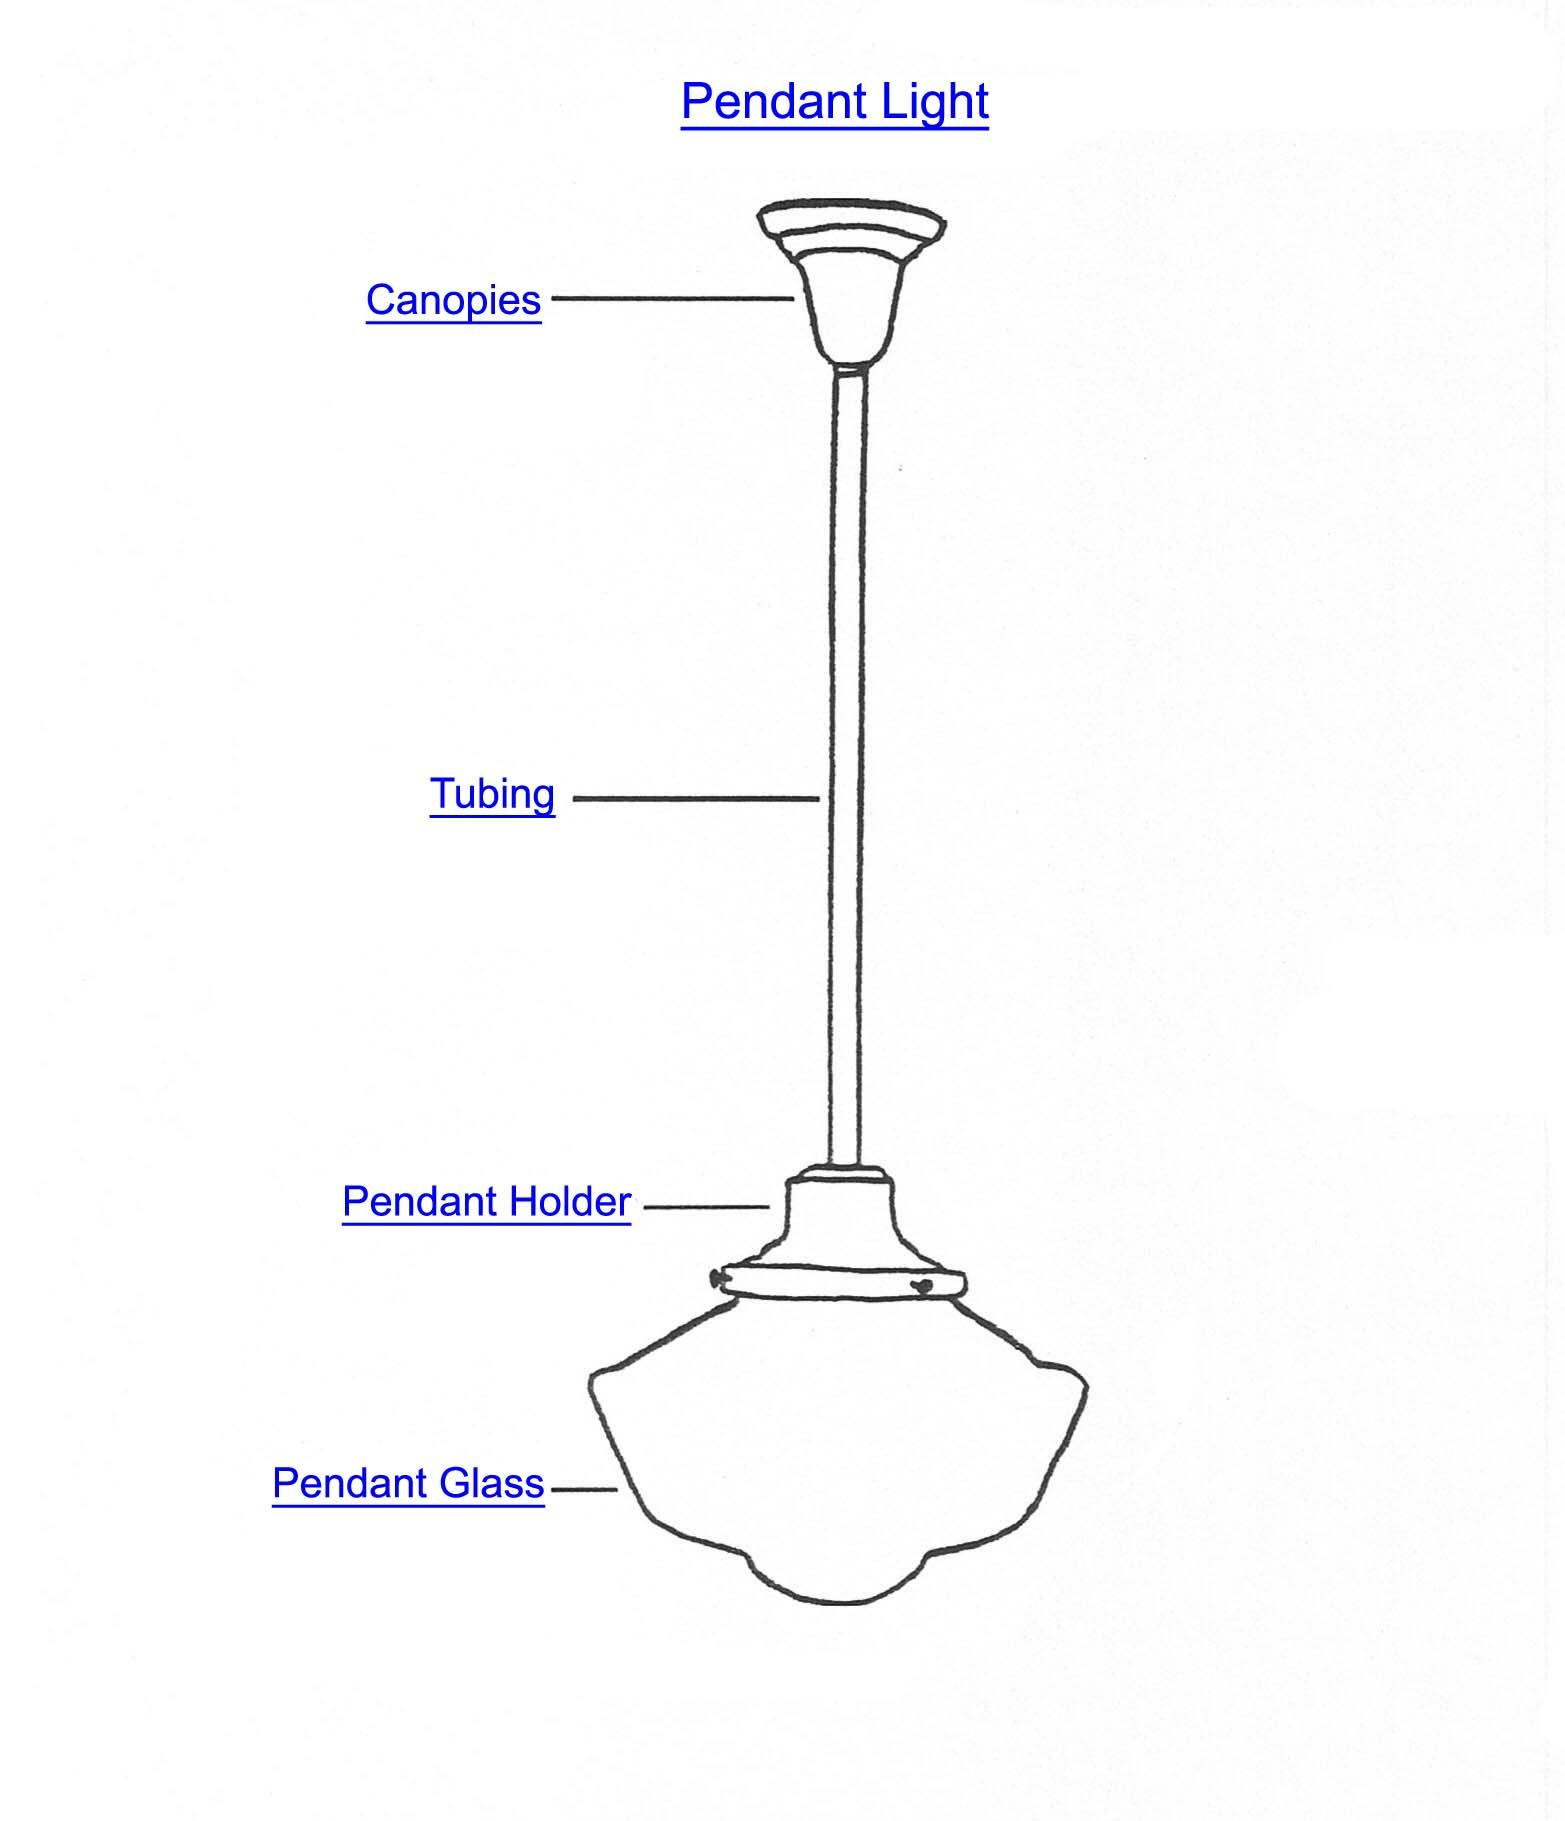 hight resolution of pendant light parts by name